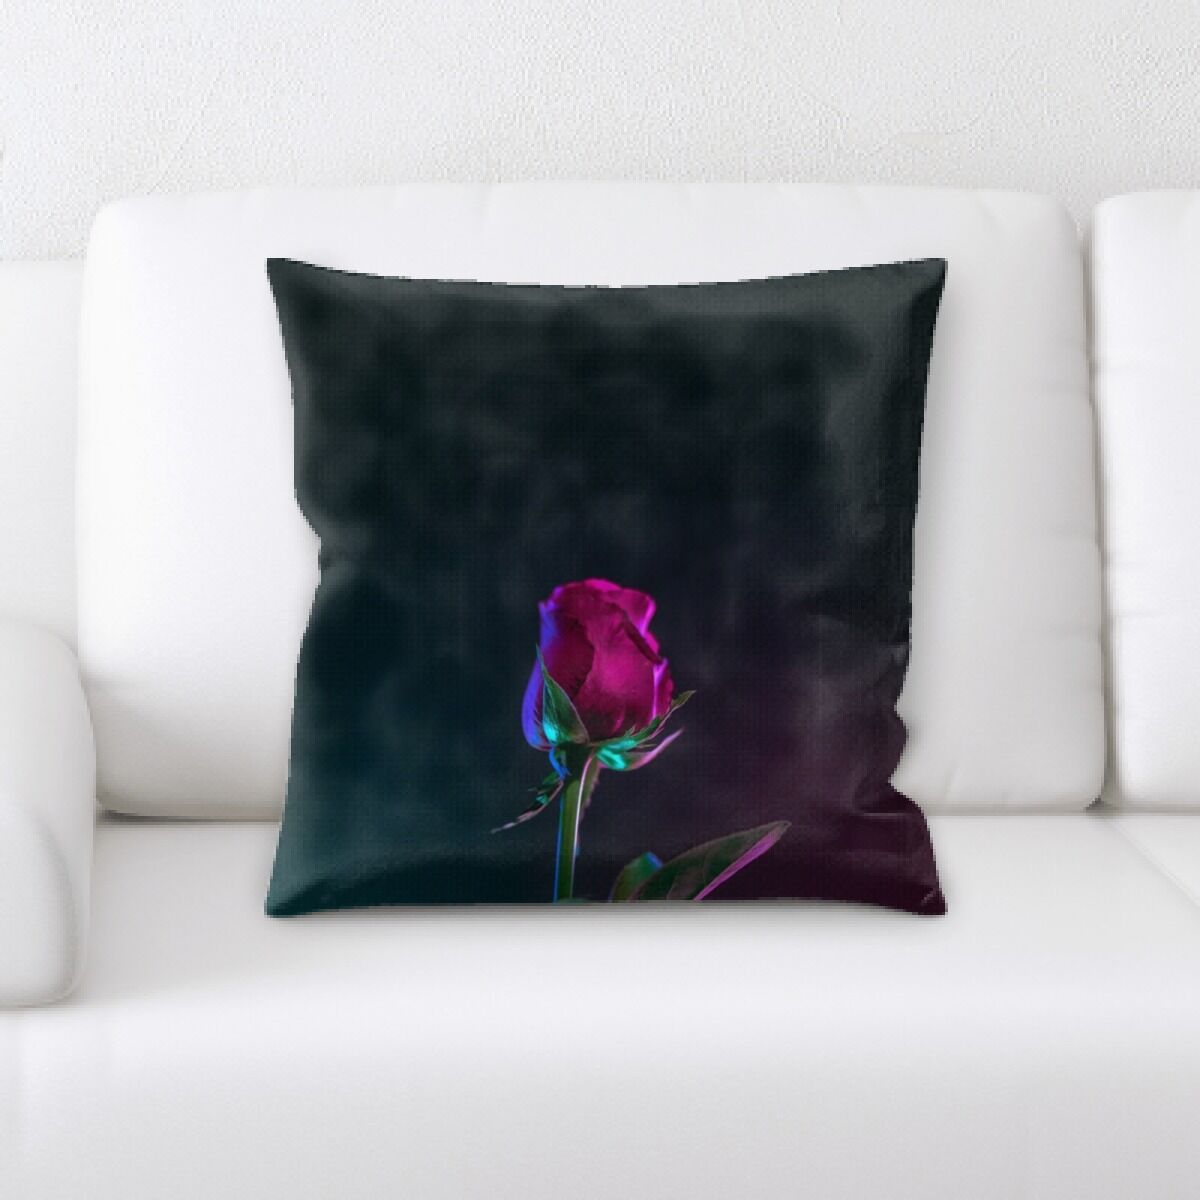 Portrait Style Photography (179) Throw Pillow